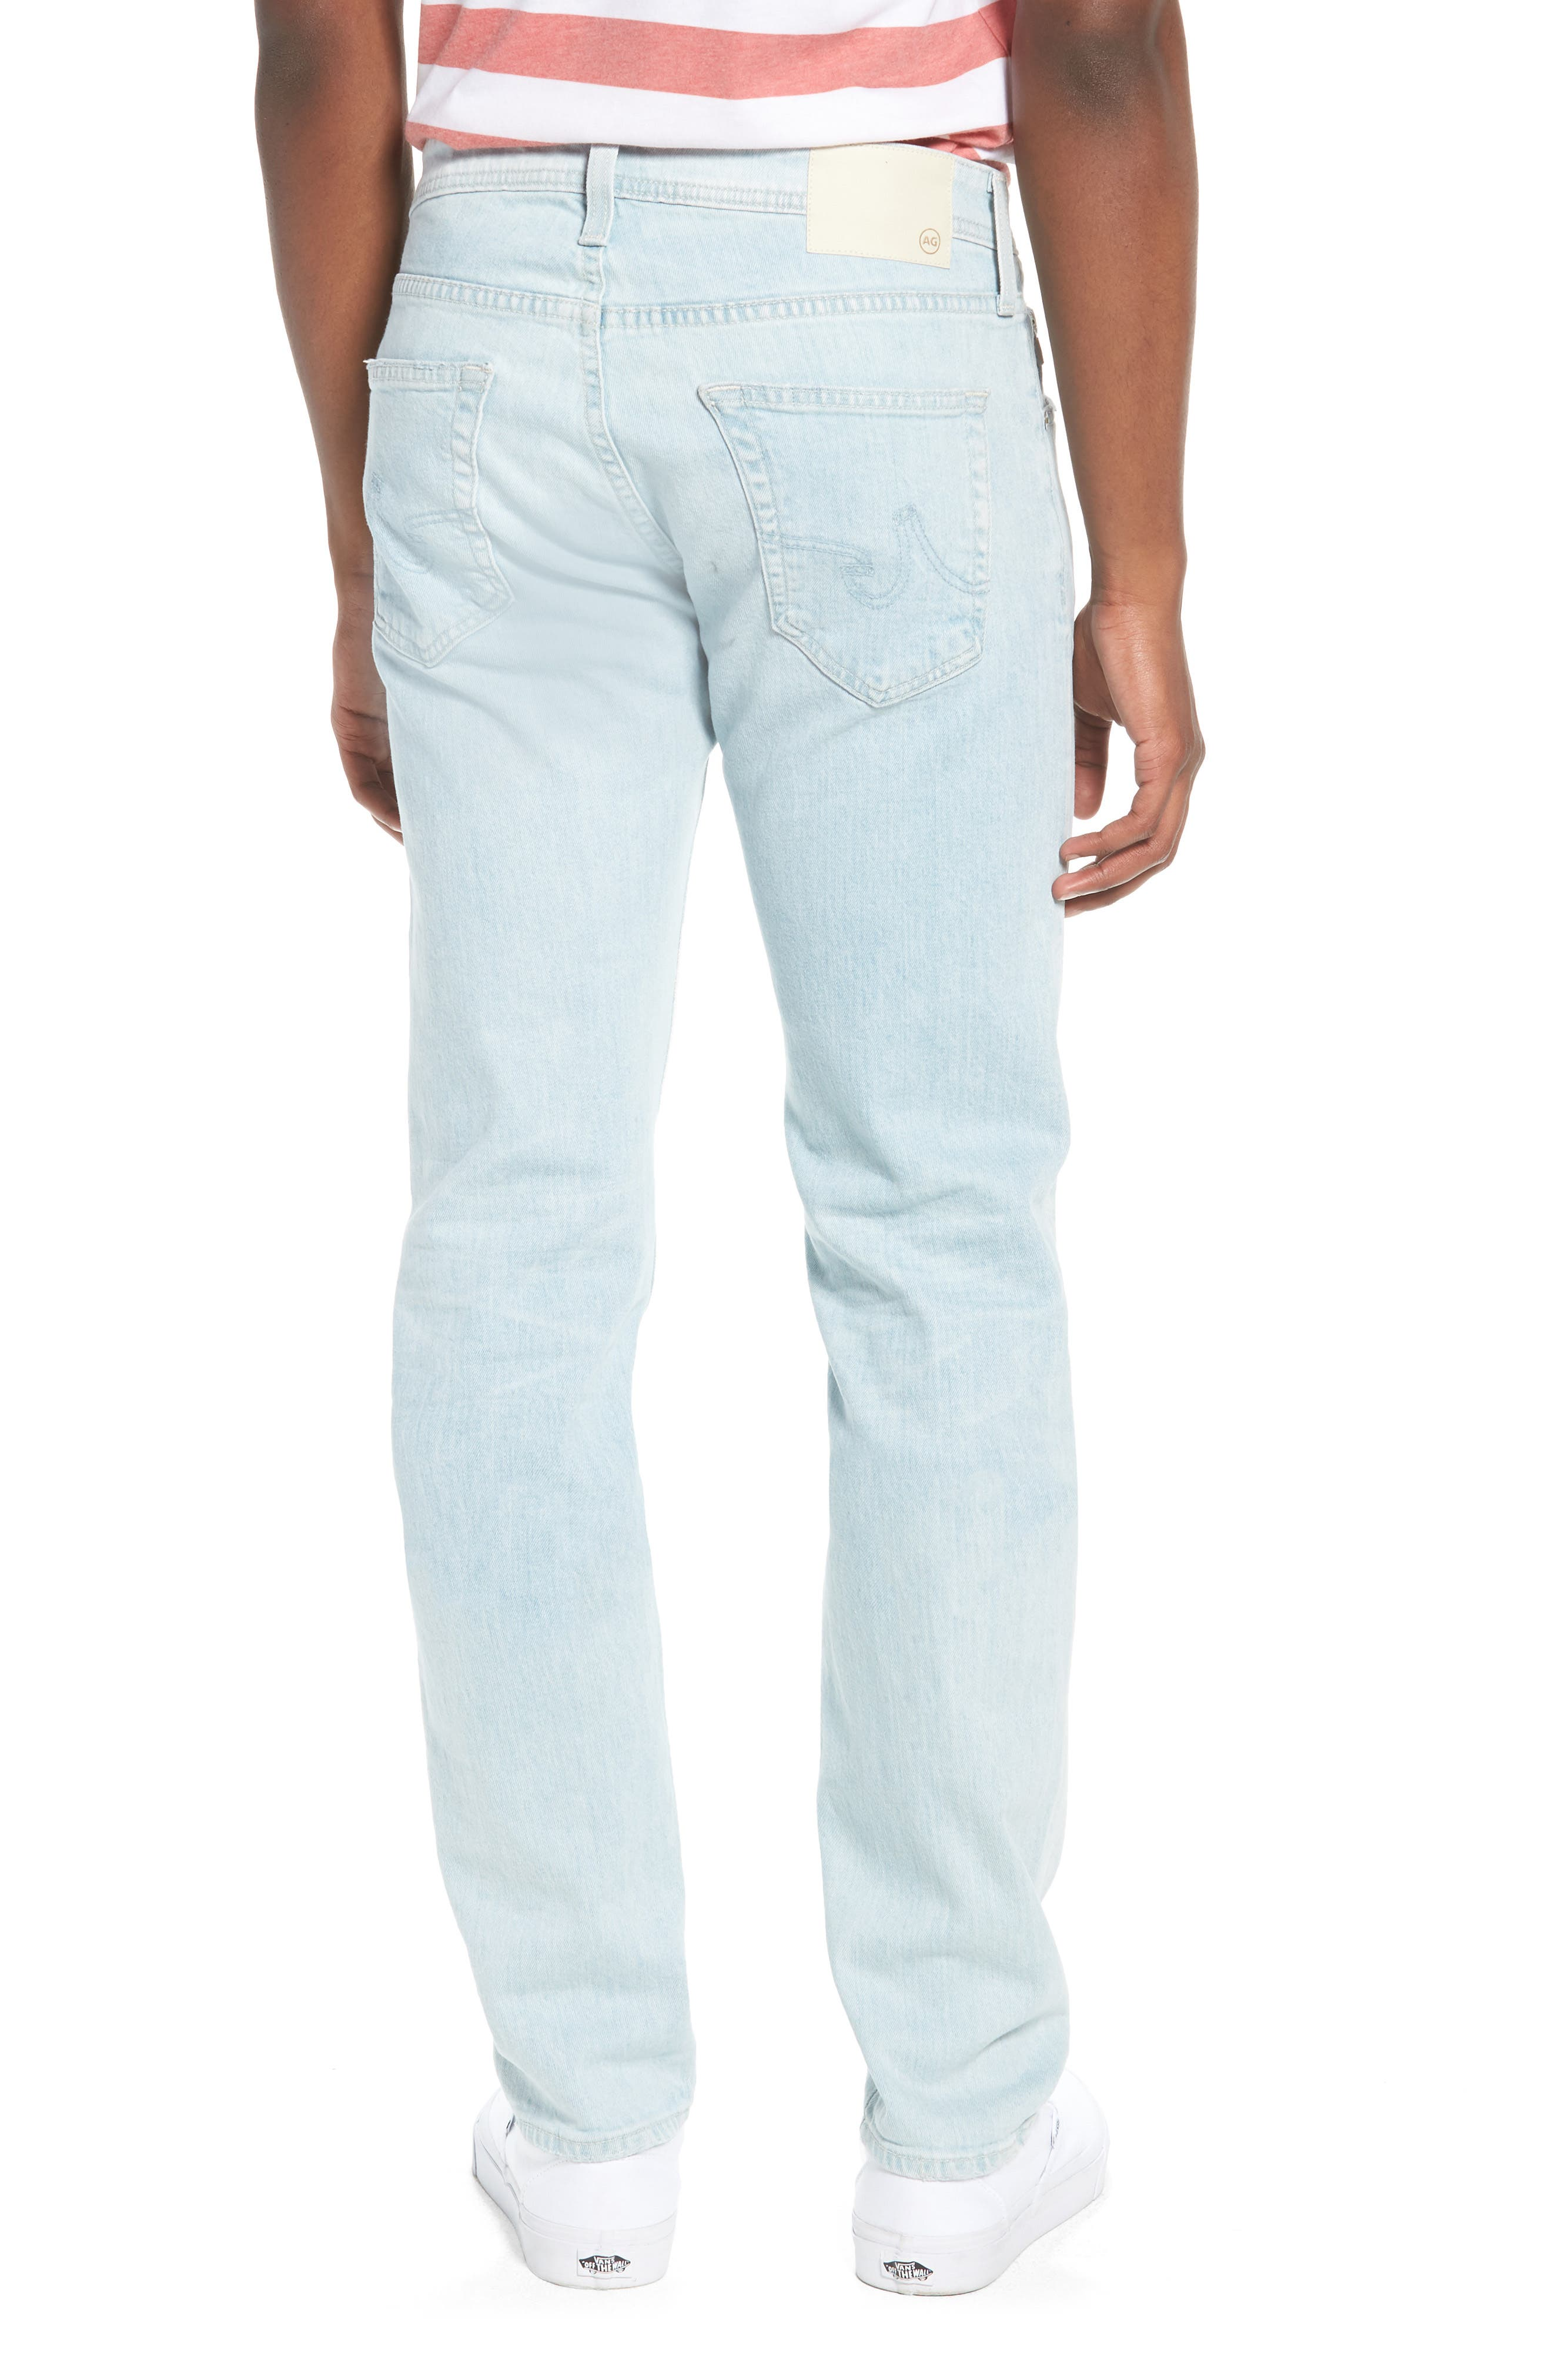 Dylan Skinny Fit Jeans,                             Alternate thumbnail 2, color,                             28 YEARS SALT MIST